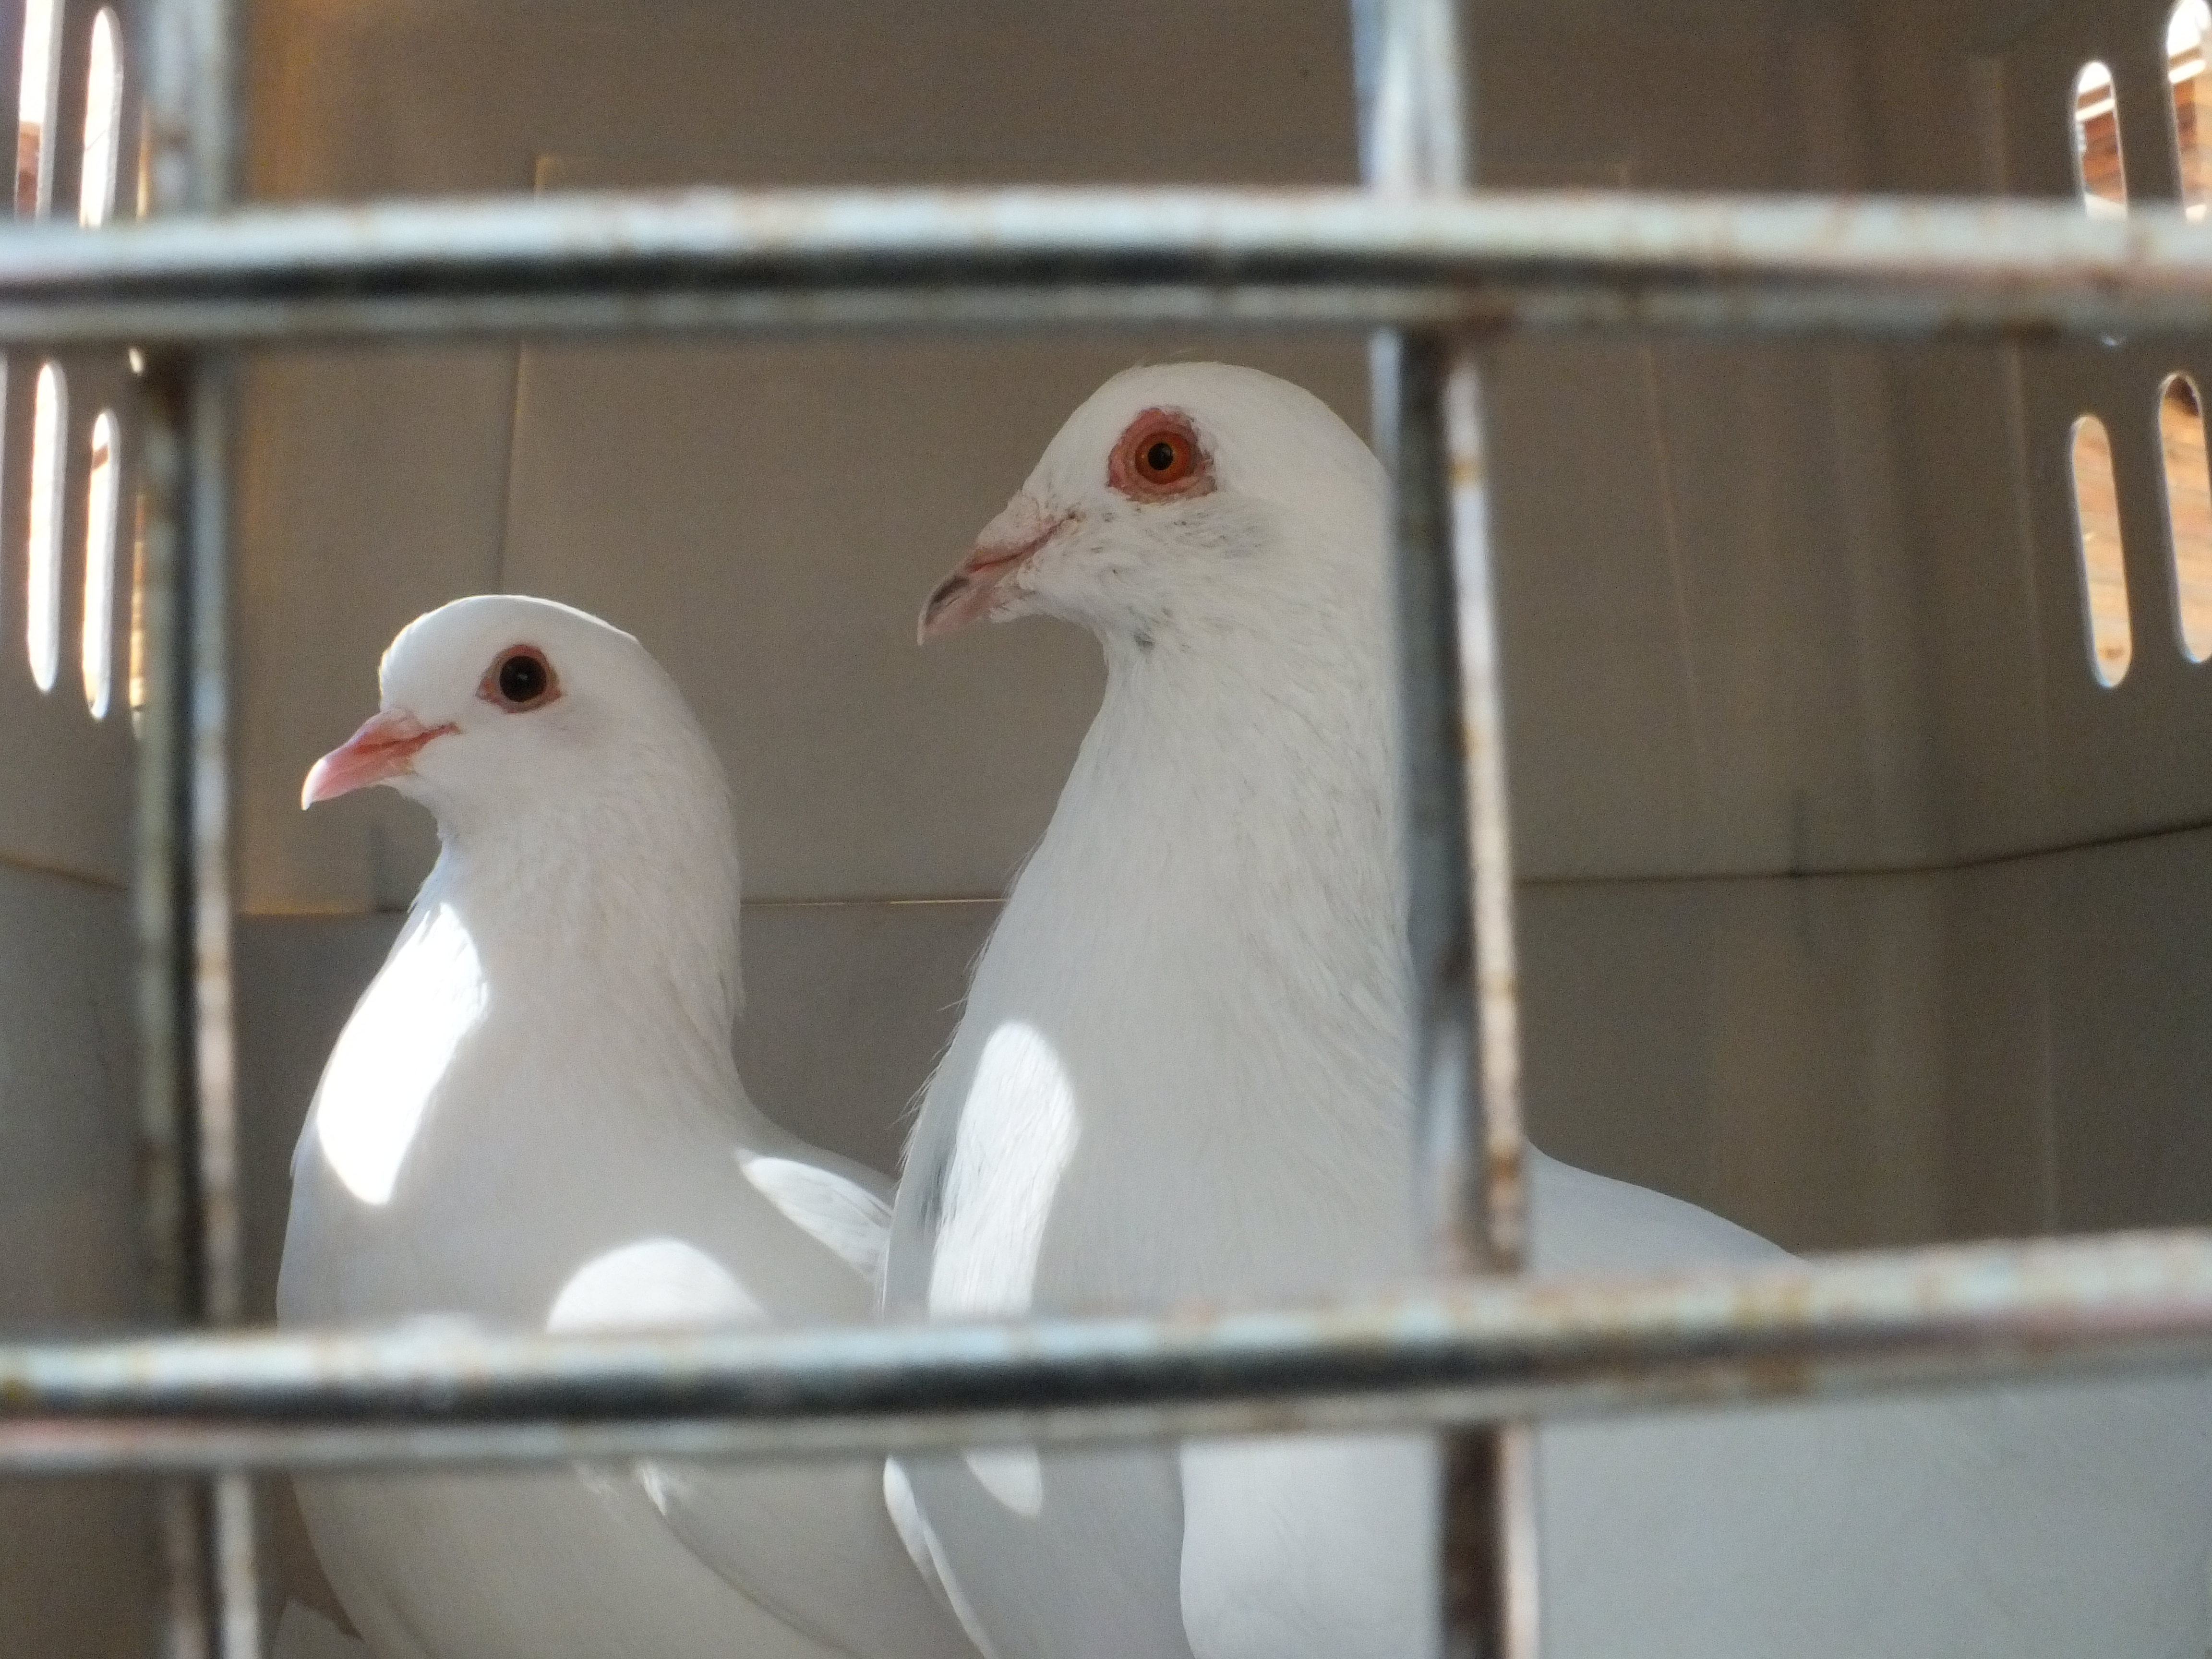 Rescued pigeons Maya & Boo waiting patiently in their crate